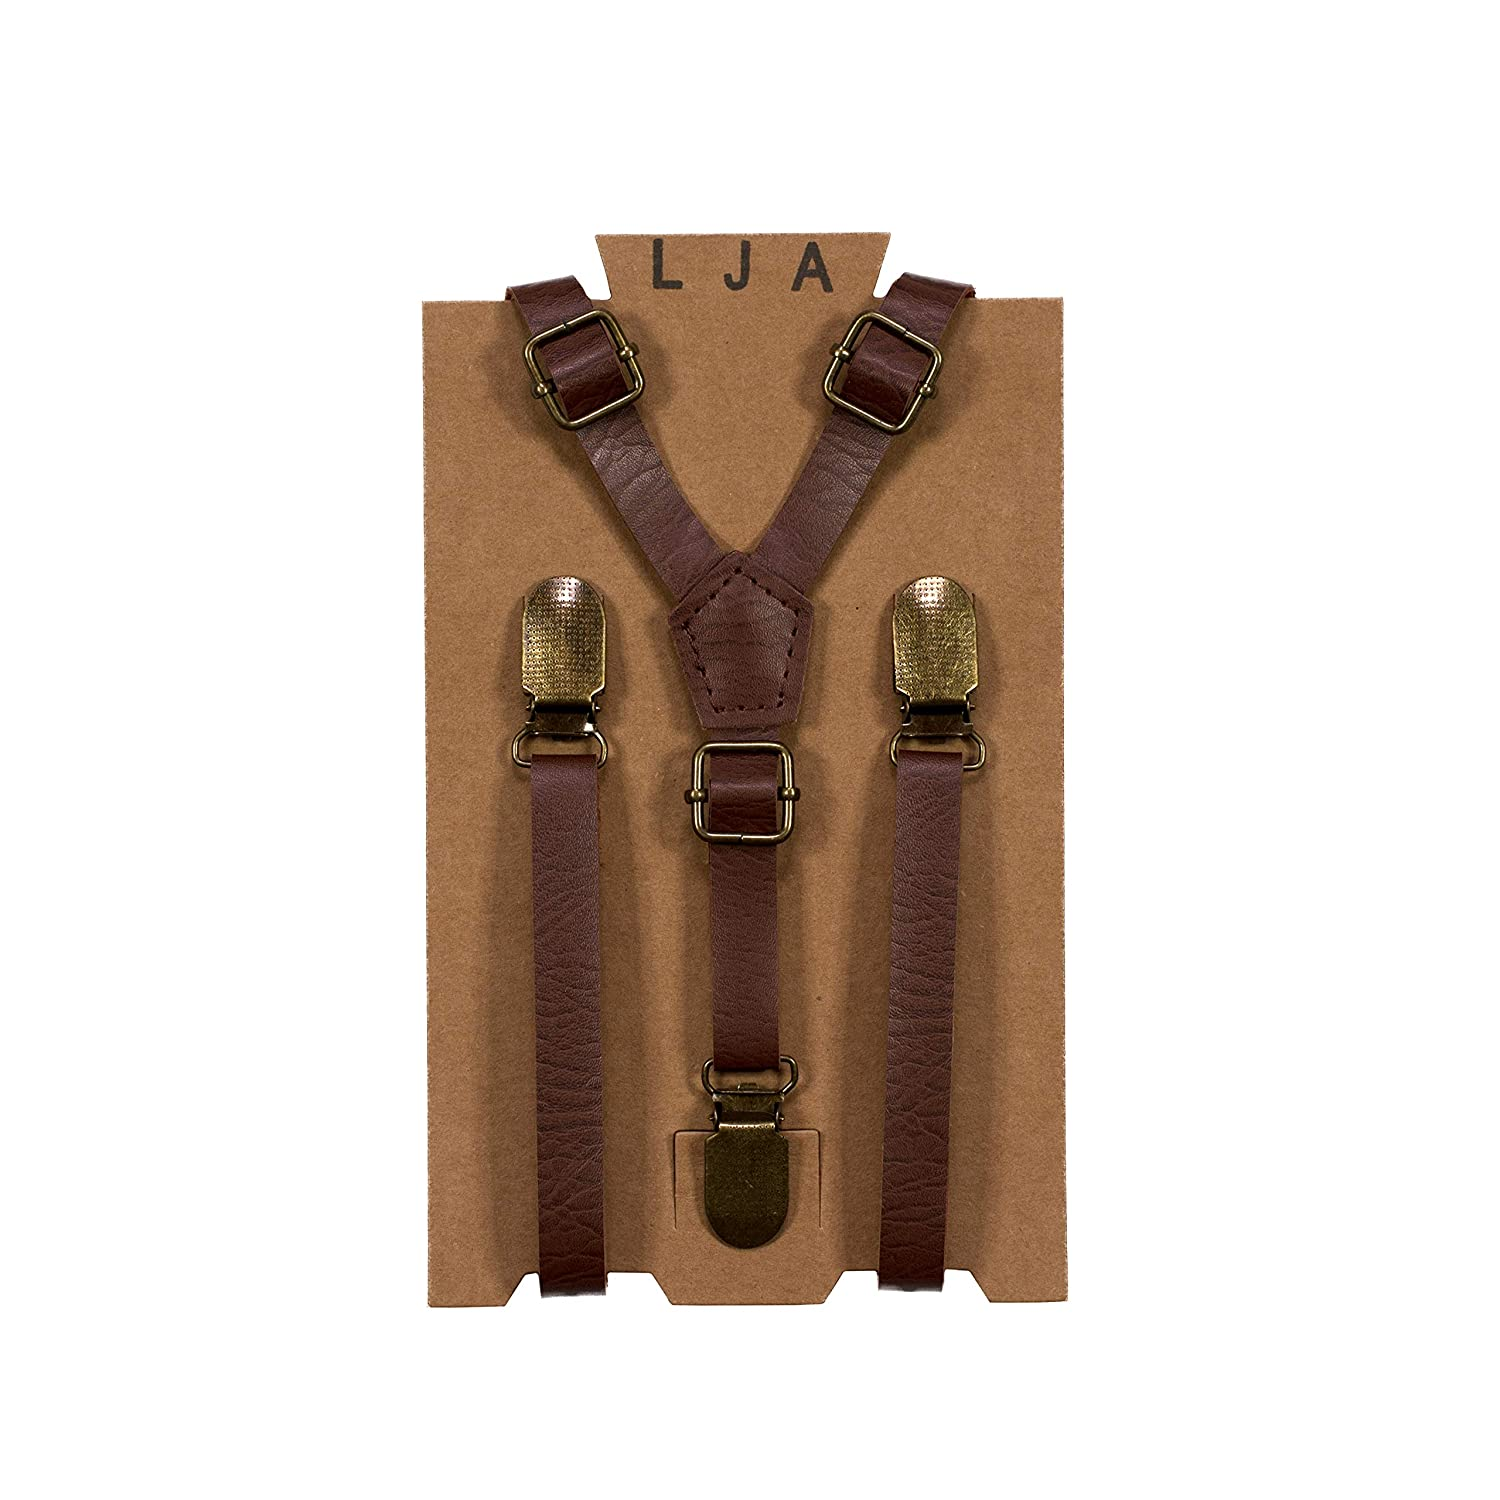 Ring Bearer wedding outfits Leather Like for Kids Ages 2 mos to 17 Years By London Jae Apparel Skinny Suspenders for Kids